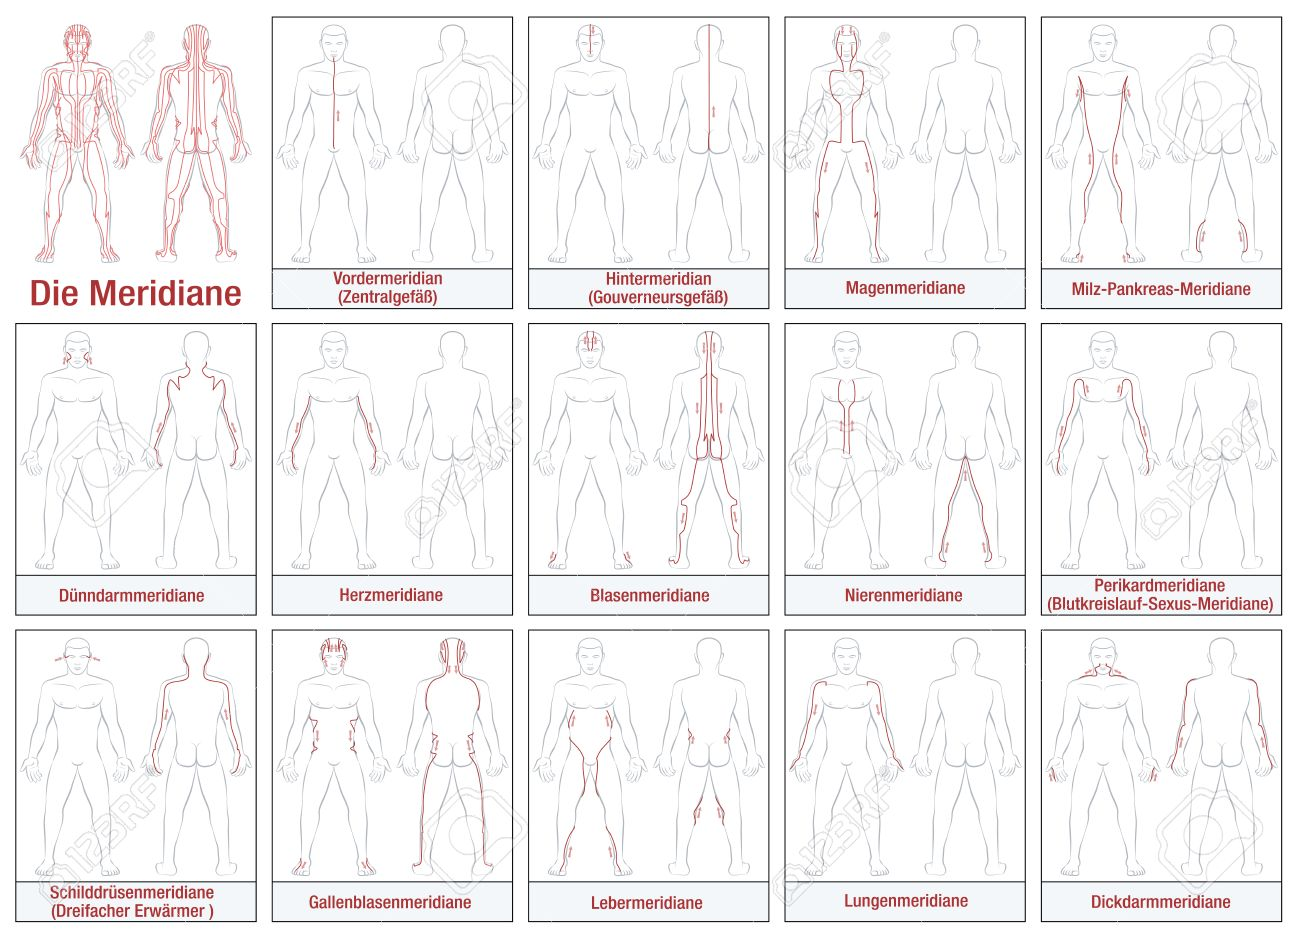 Body meridians - GERMAN LABELING - Schematic diagram with main acupuncture meridians and their directions of flow. Isolated illustration on white background. - 52545876